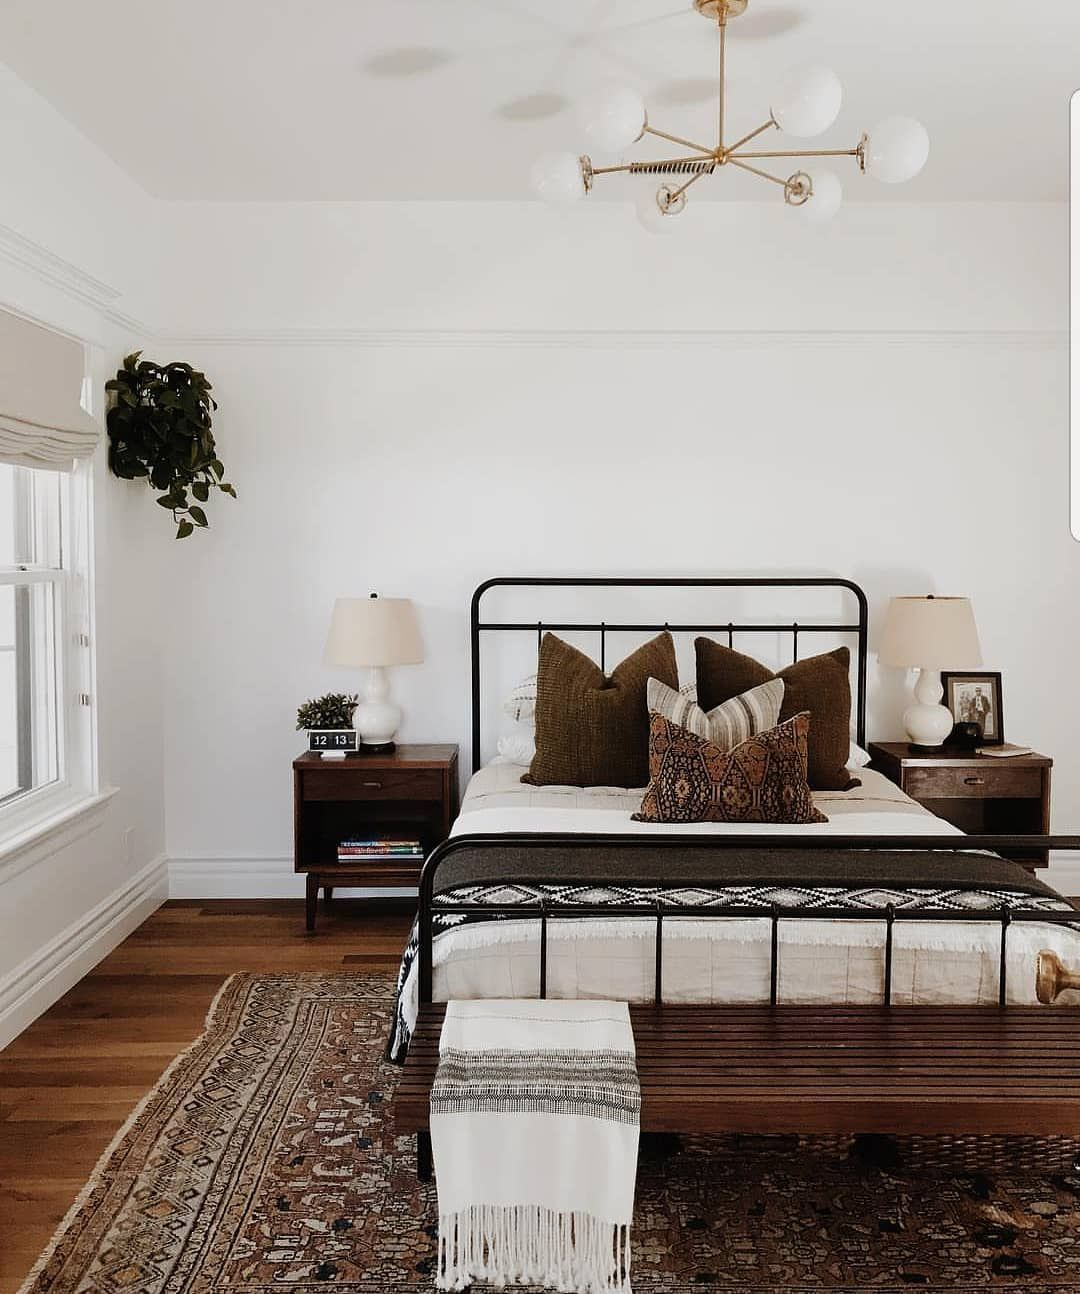 Eclectic Modern Bedroom Renovation Features A Mid Century Modern